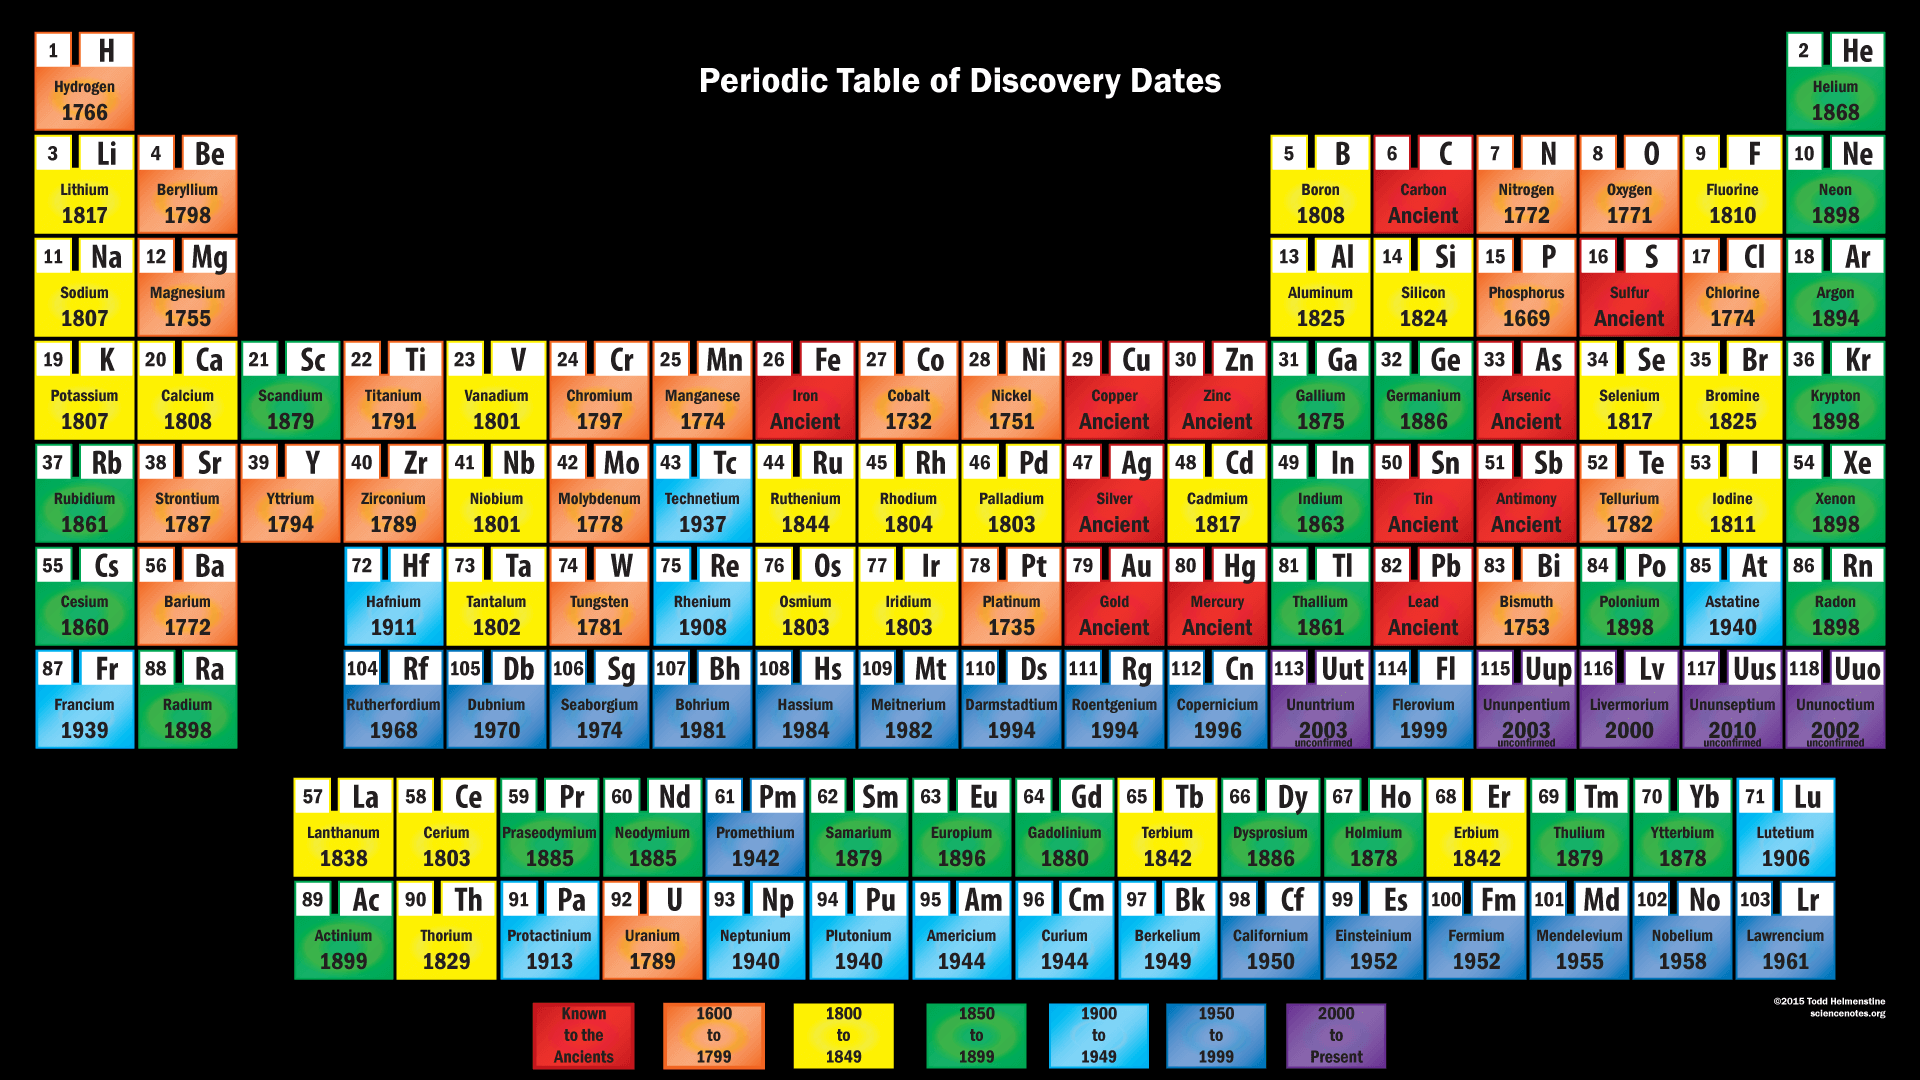 Printable periodic tables science notes and projects element discovery periodic table gamestrikefo Images